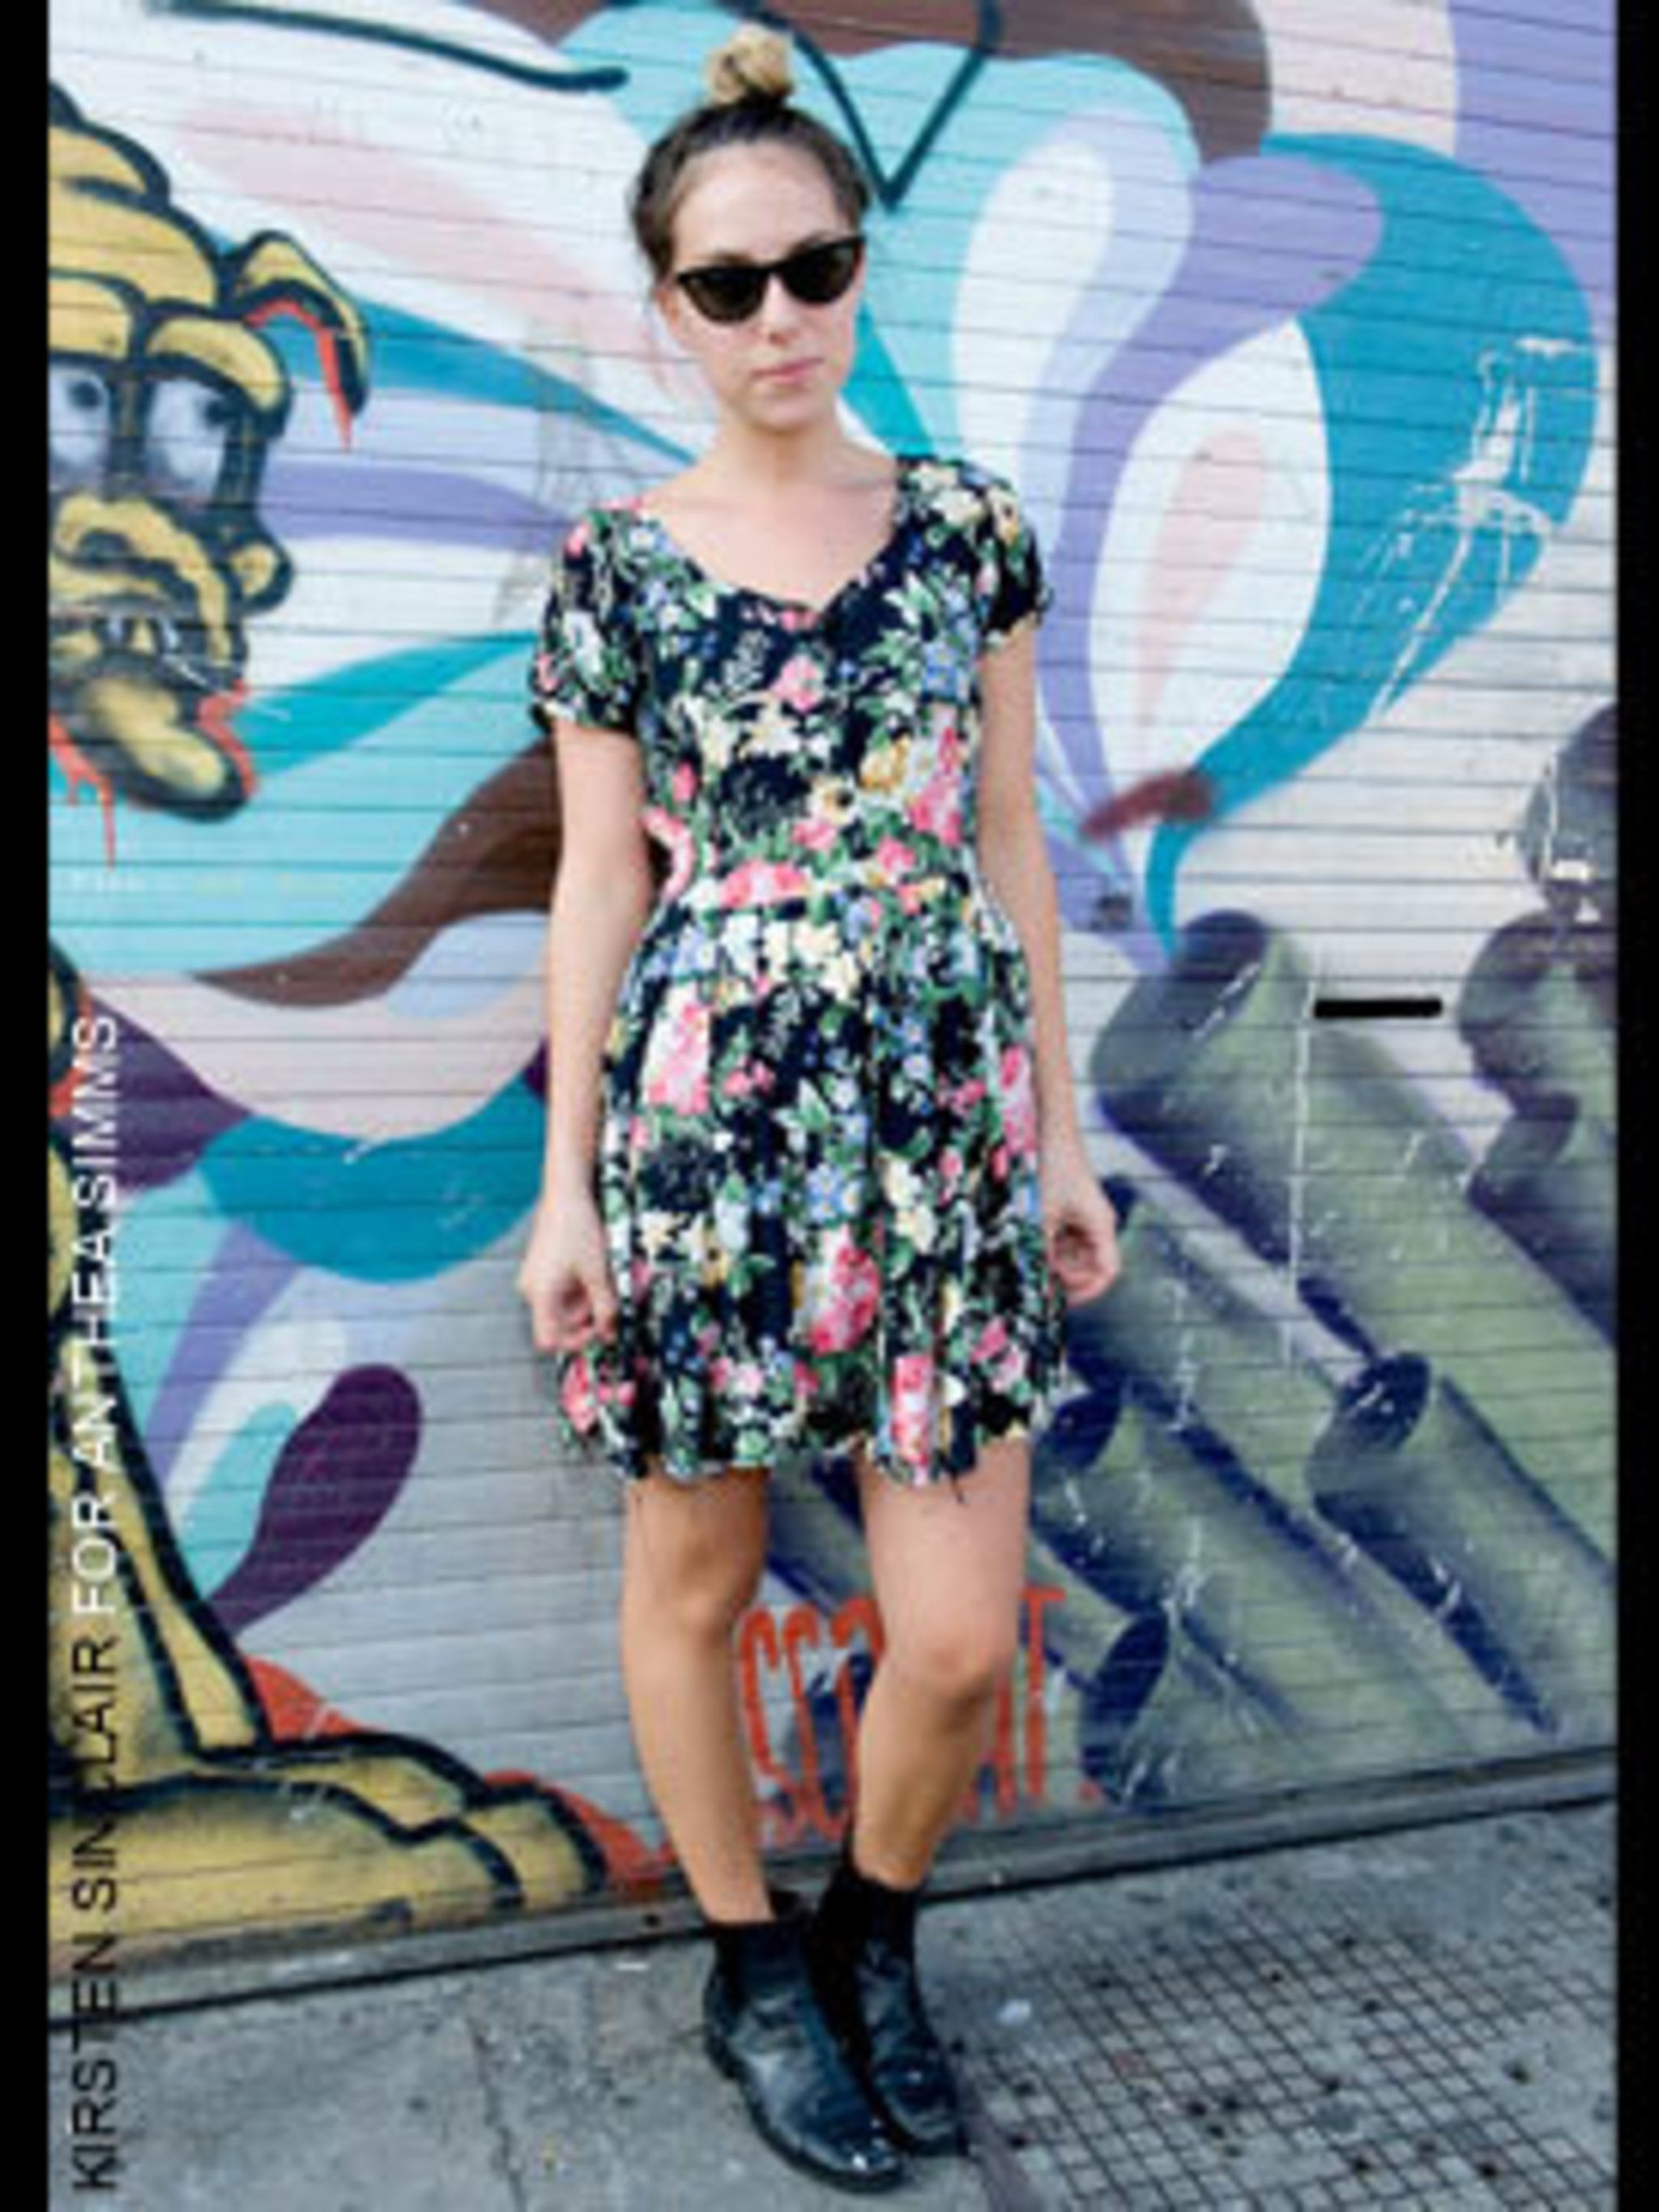 <p>Sarah a Bar Waitress from Sydney wearing sunglasses from The Vintage Store, dress from Battersea boot sale and Chelsea boots which are her mum's.</p>